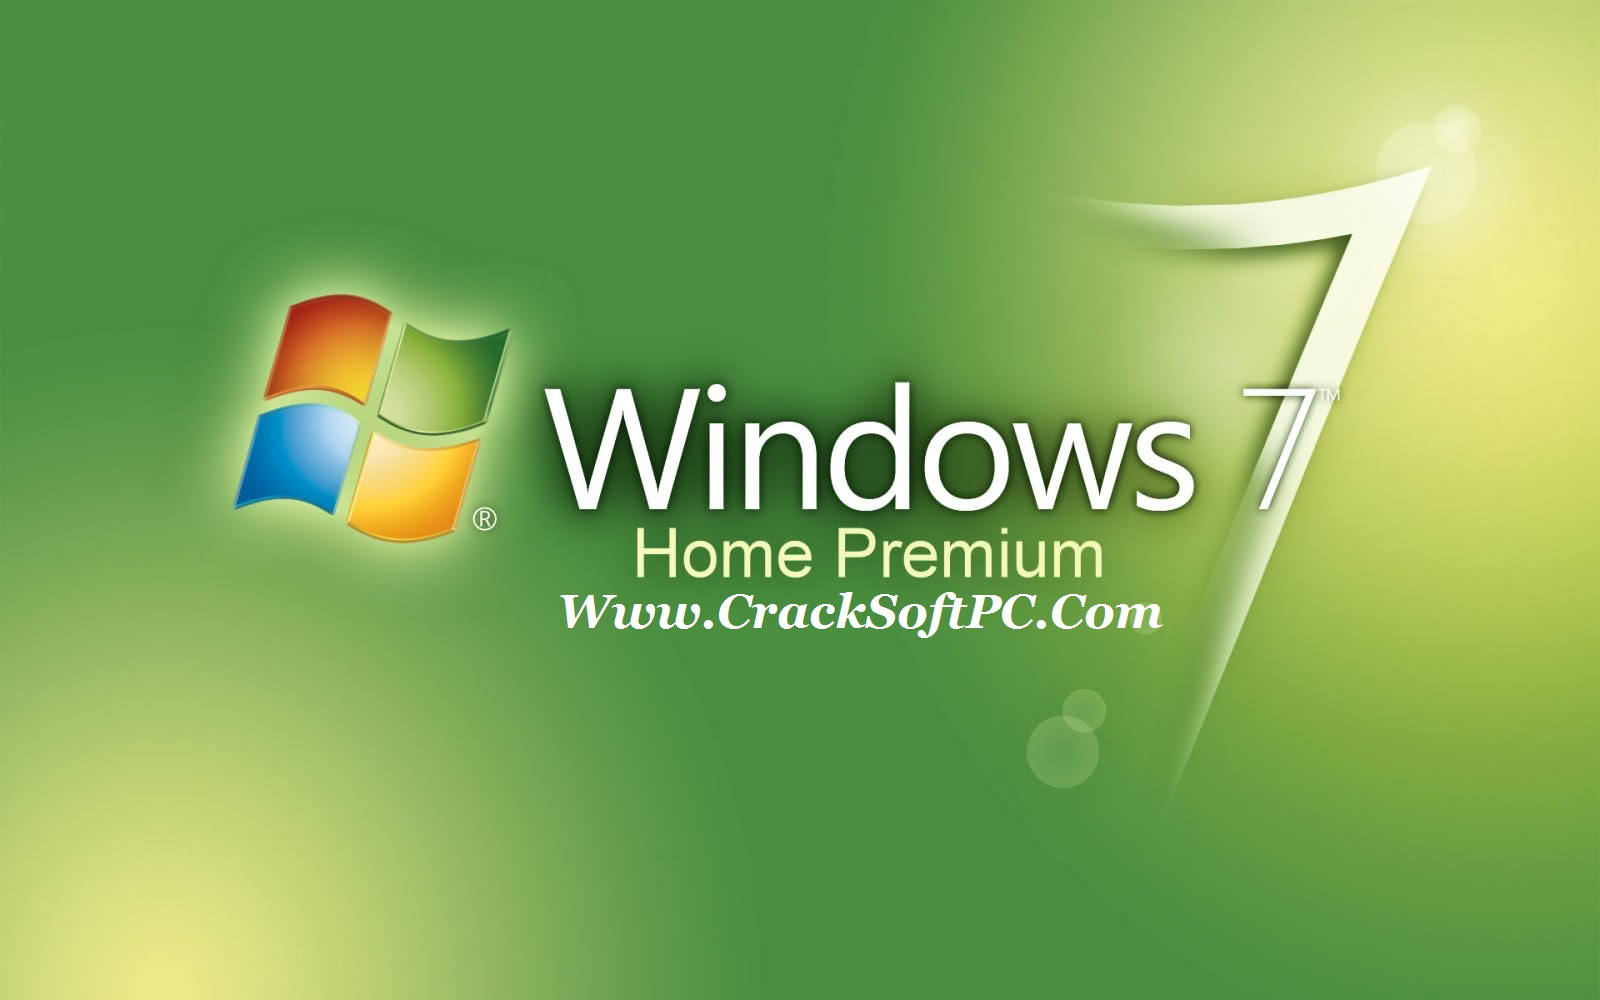 windows 7 home premium product key 64 bit free